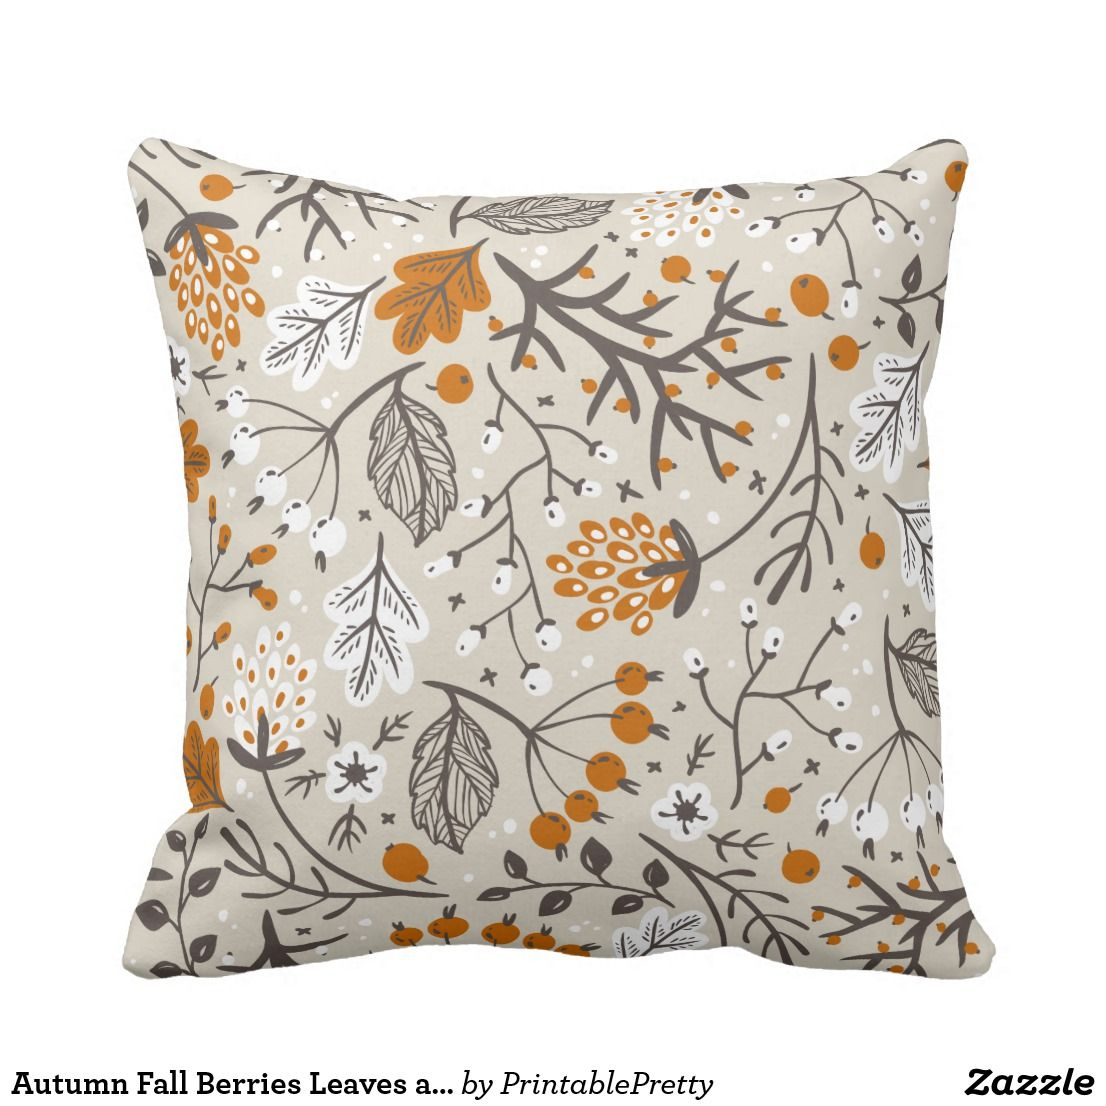 Autumn fall berries leaves and branches pattern throw pillow in